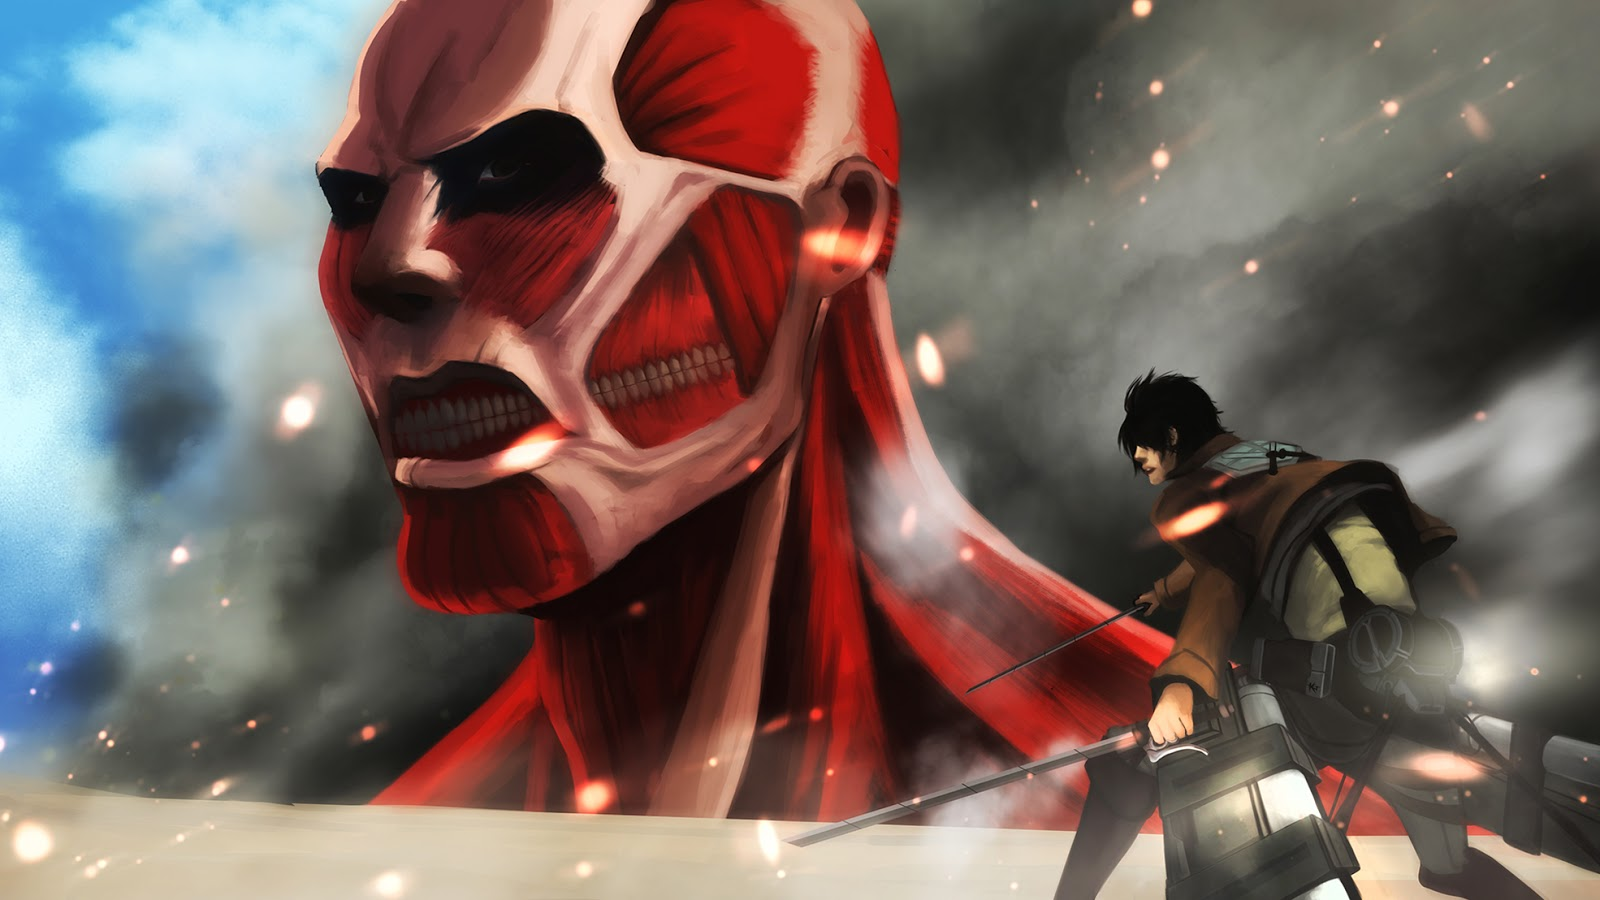 Eren Jaeger Colossal Titan Attack On Titan Shingeki Attack On Titan 1600x900 Wallpaper Teahub Io